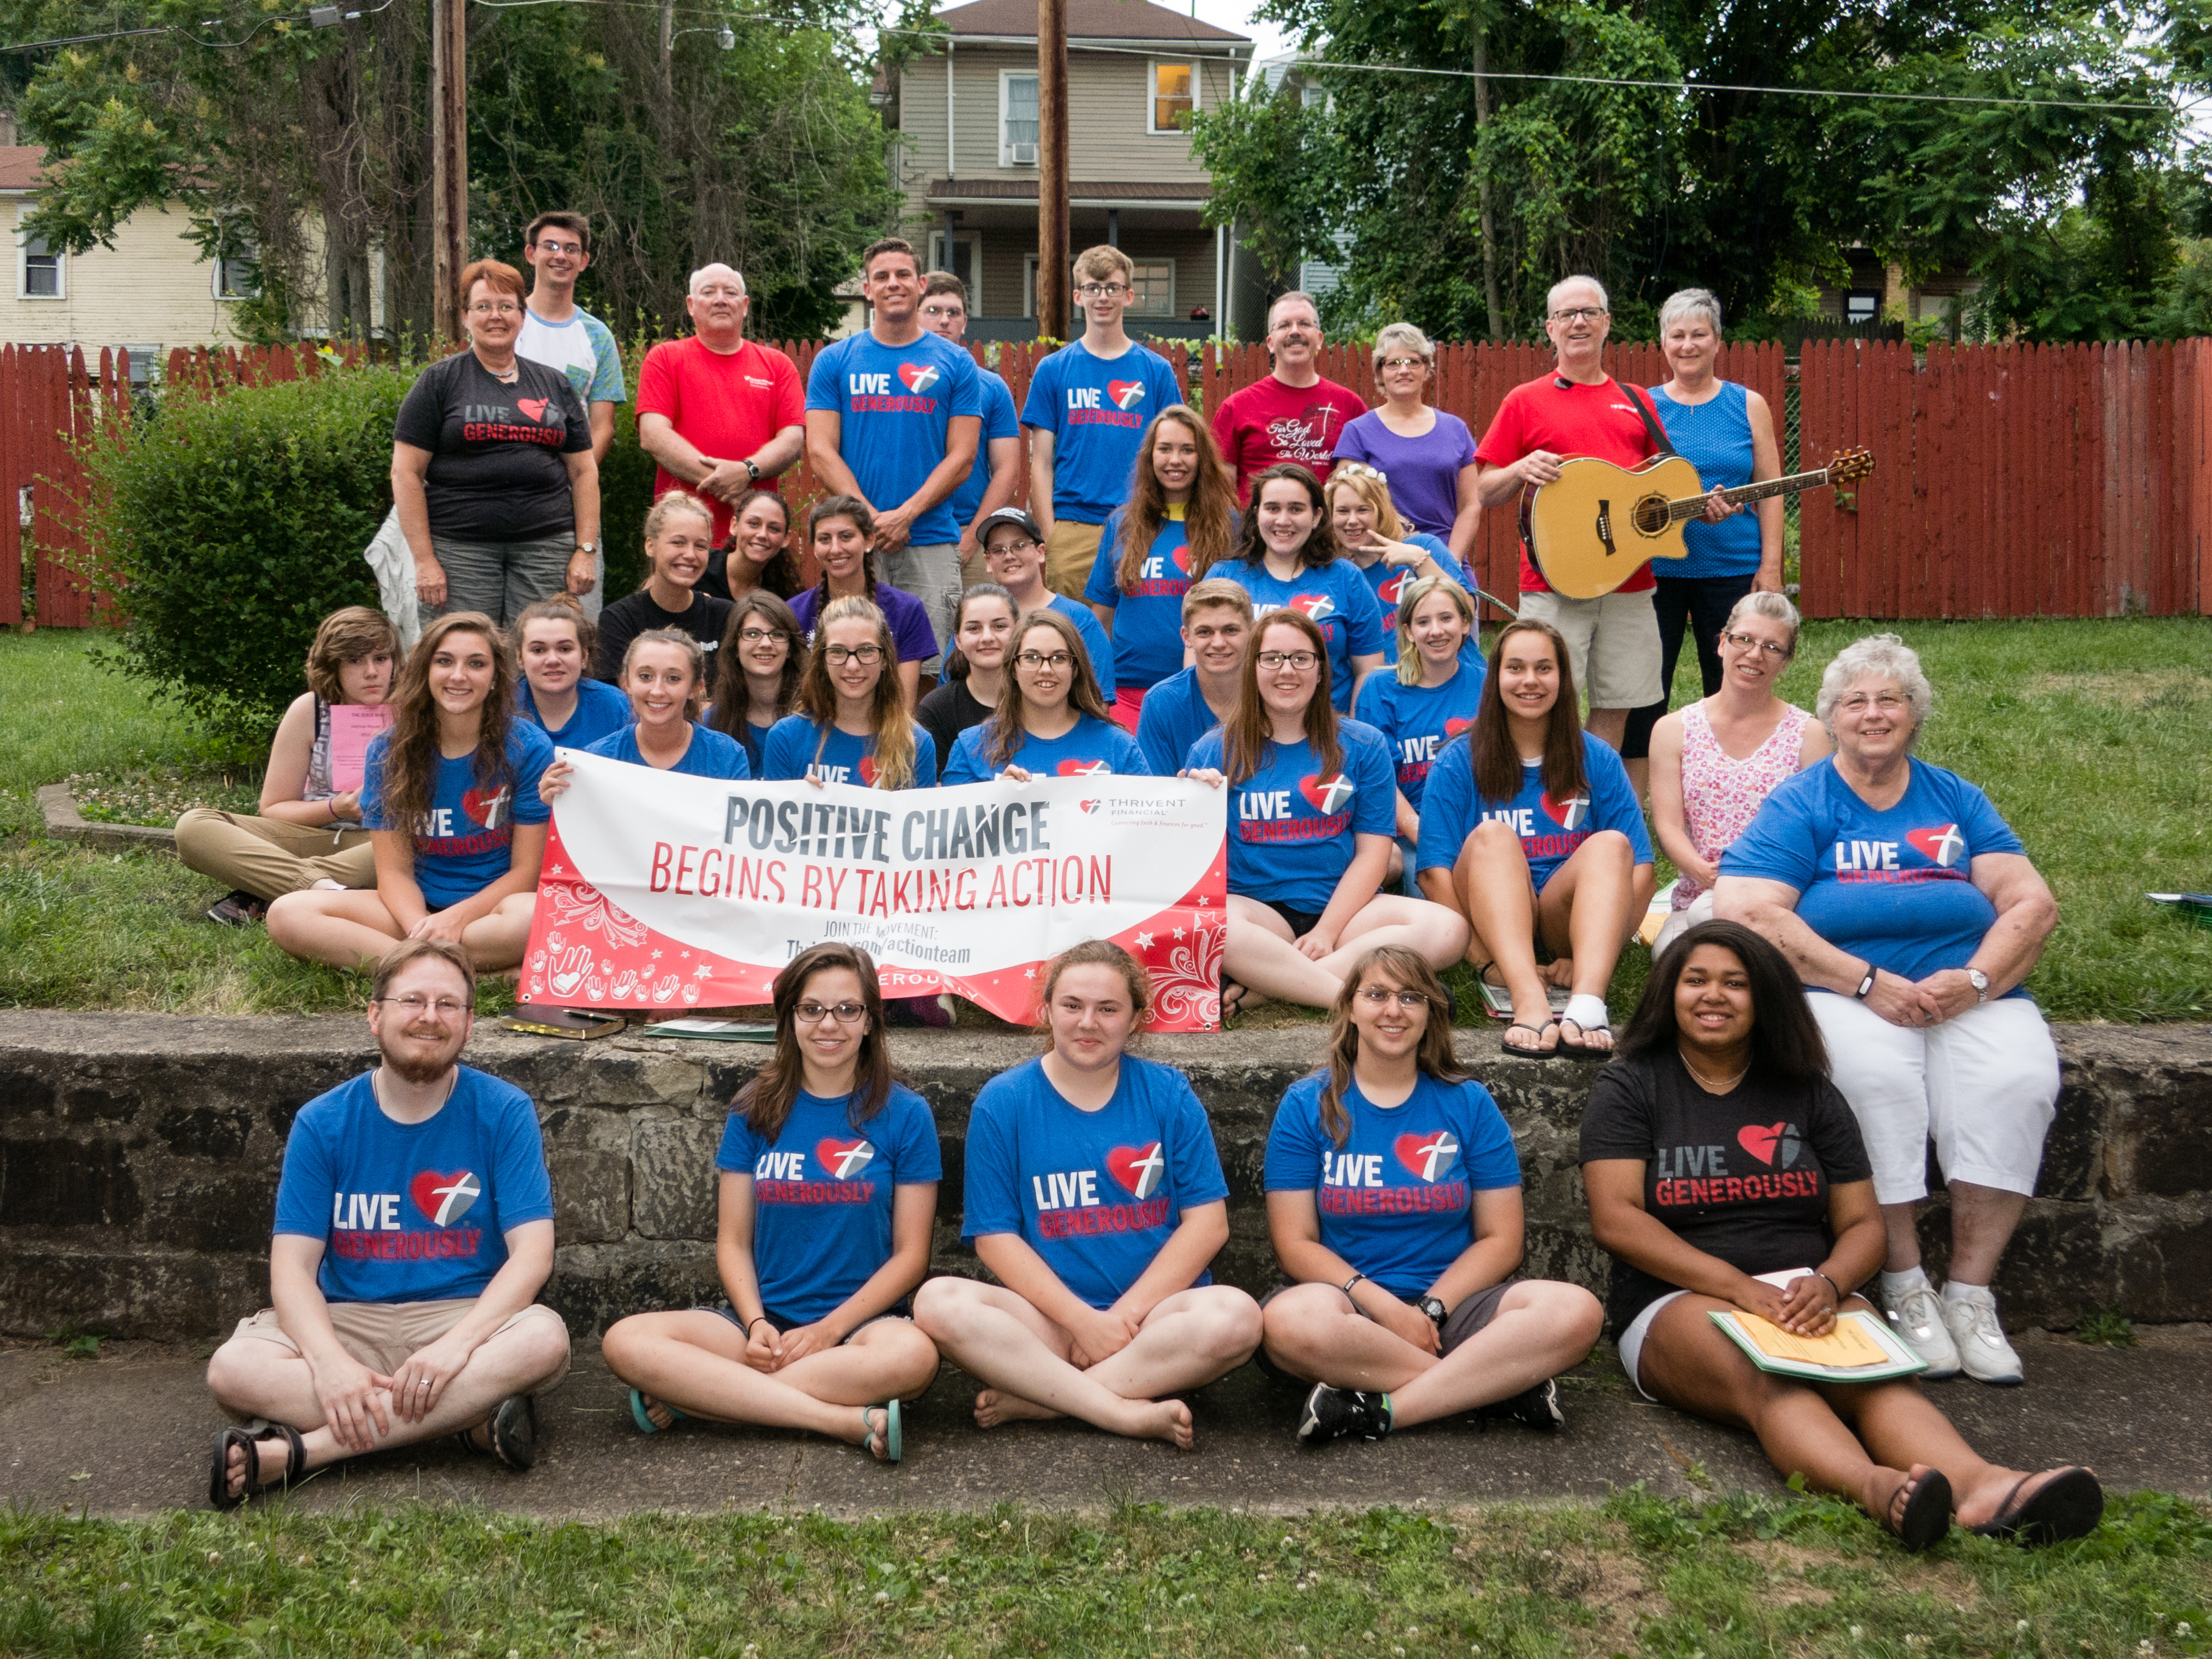 2016-06-22_3680_IMG_Dv - Joshua House - Group Photo- 85Q.jpg